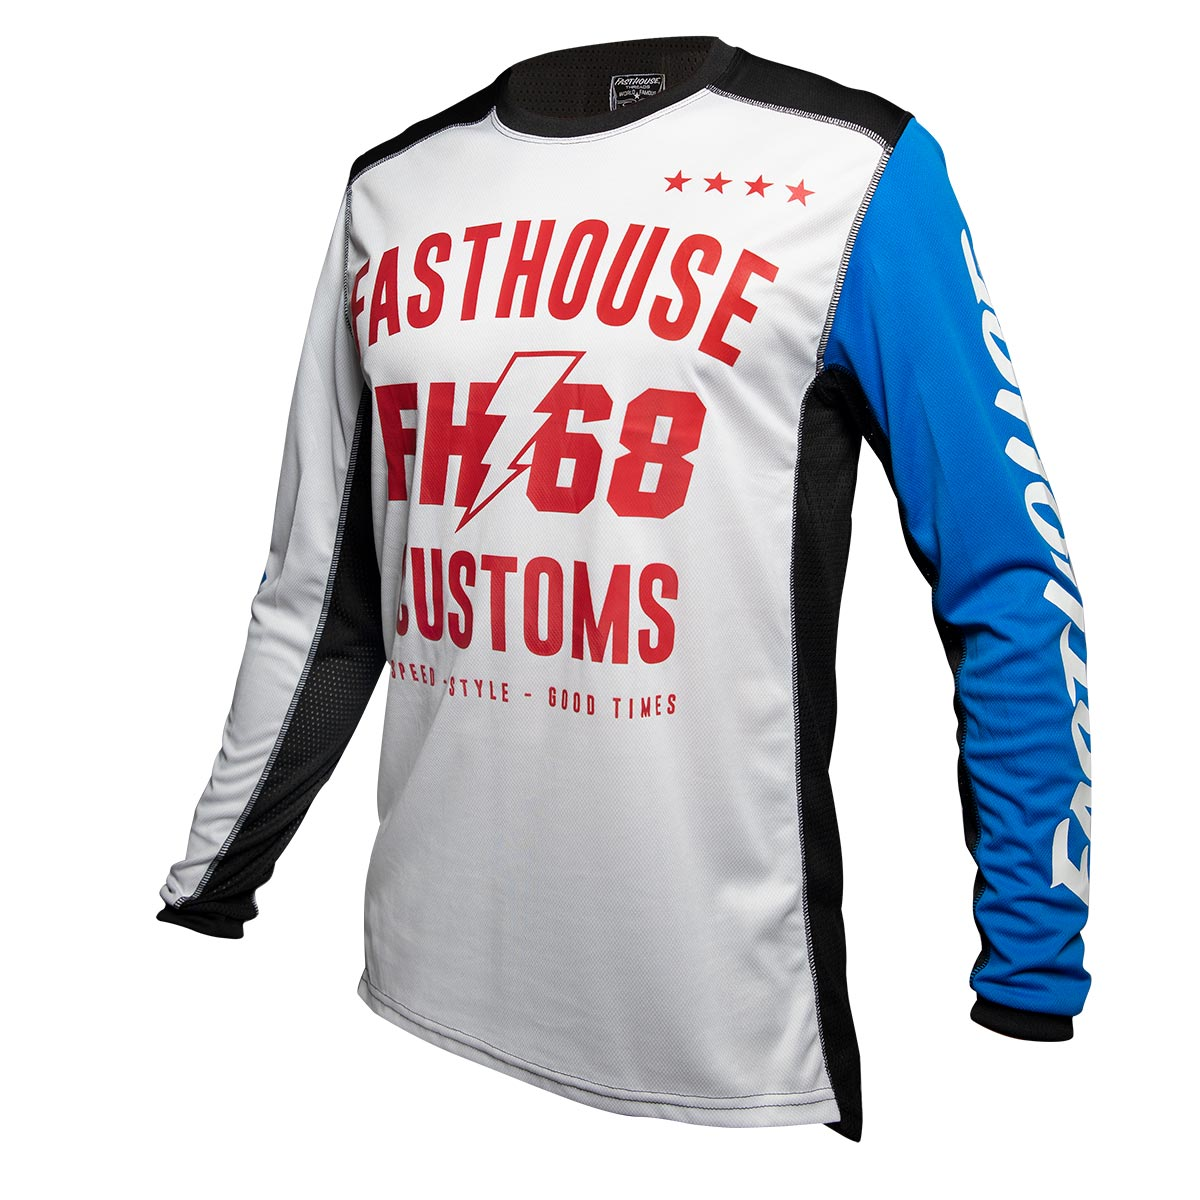 Fasthouse - Worx 68 Jersey - White/Blue